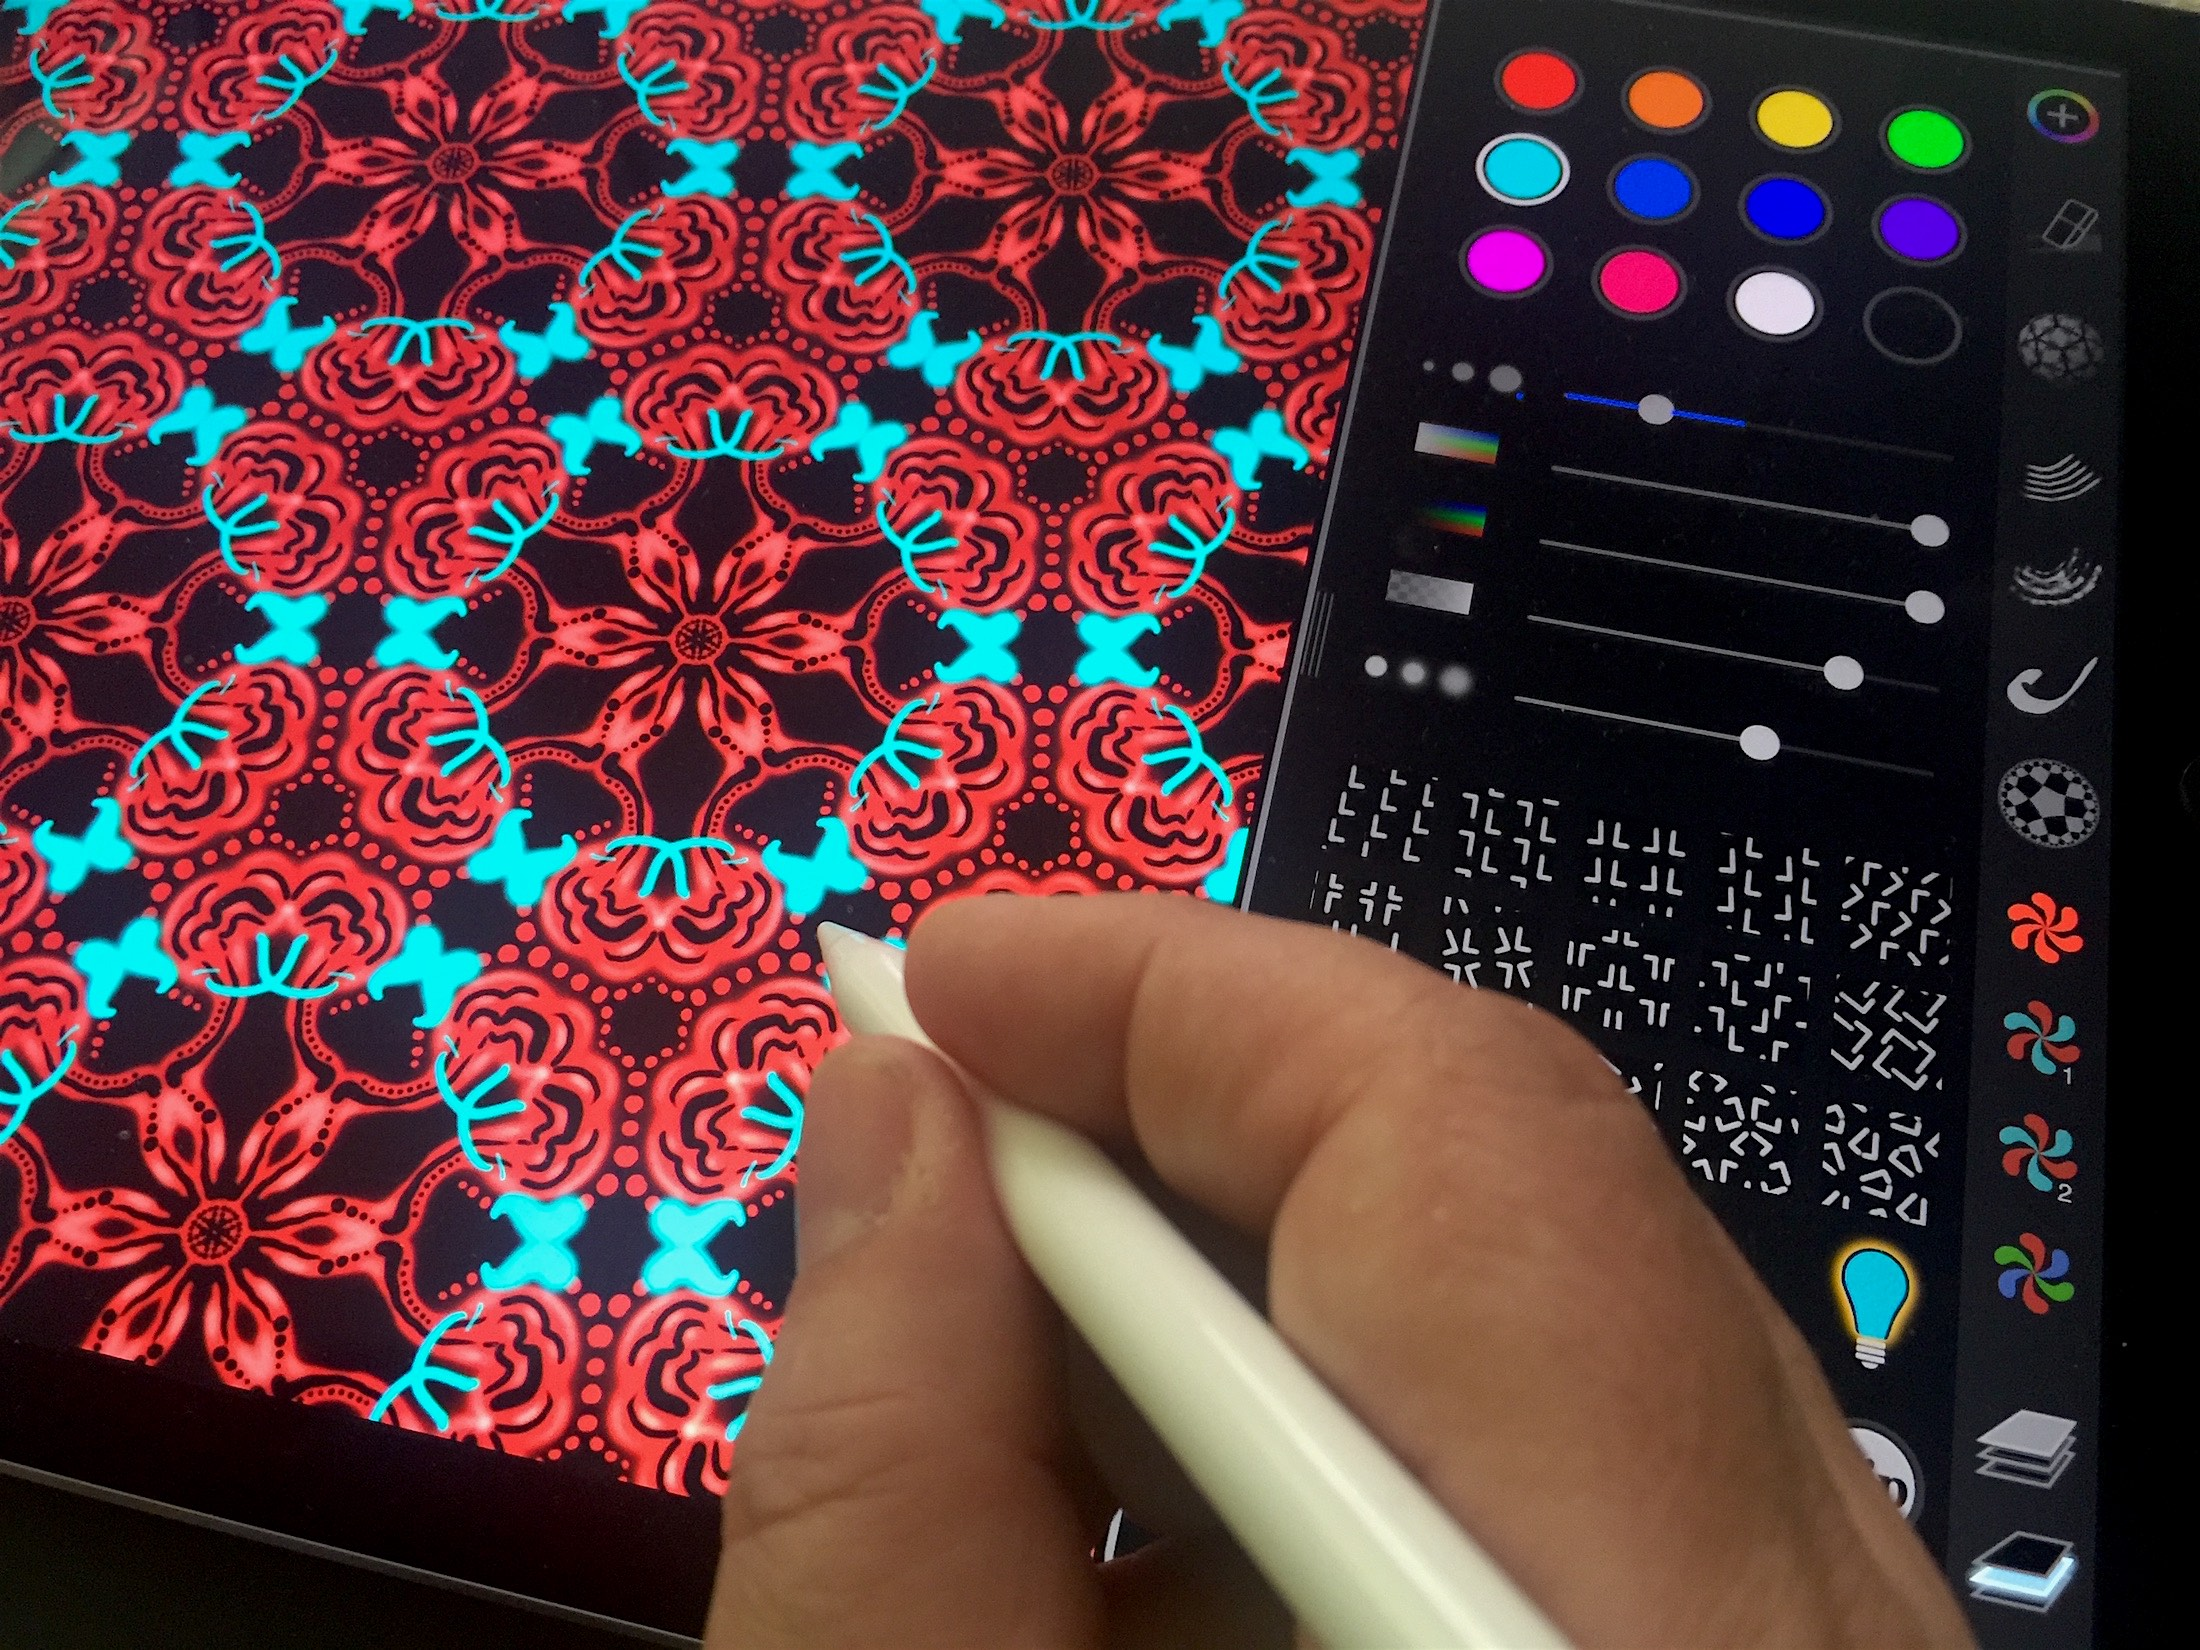 Iornament 2 0 2 for ios math art drawing app gets apple pencil support